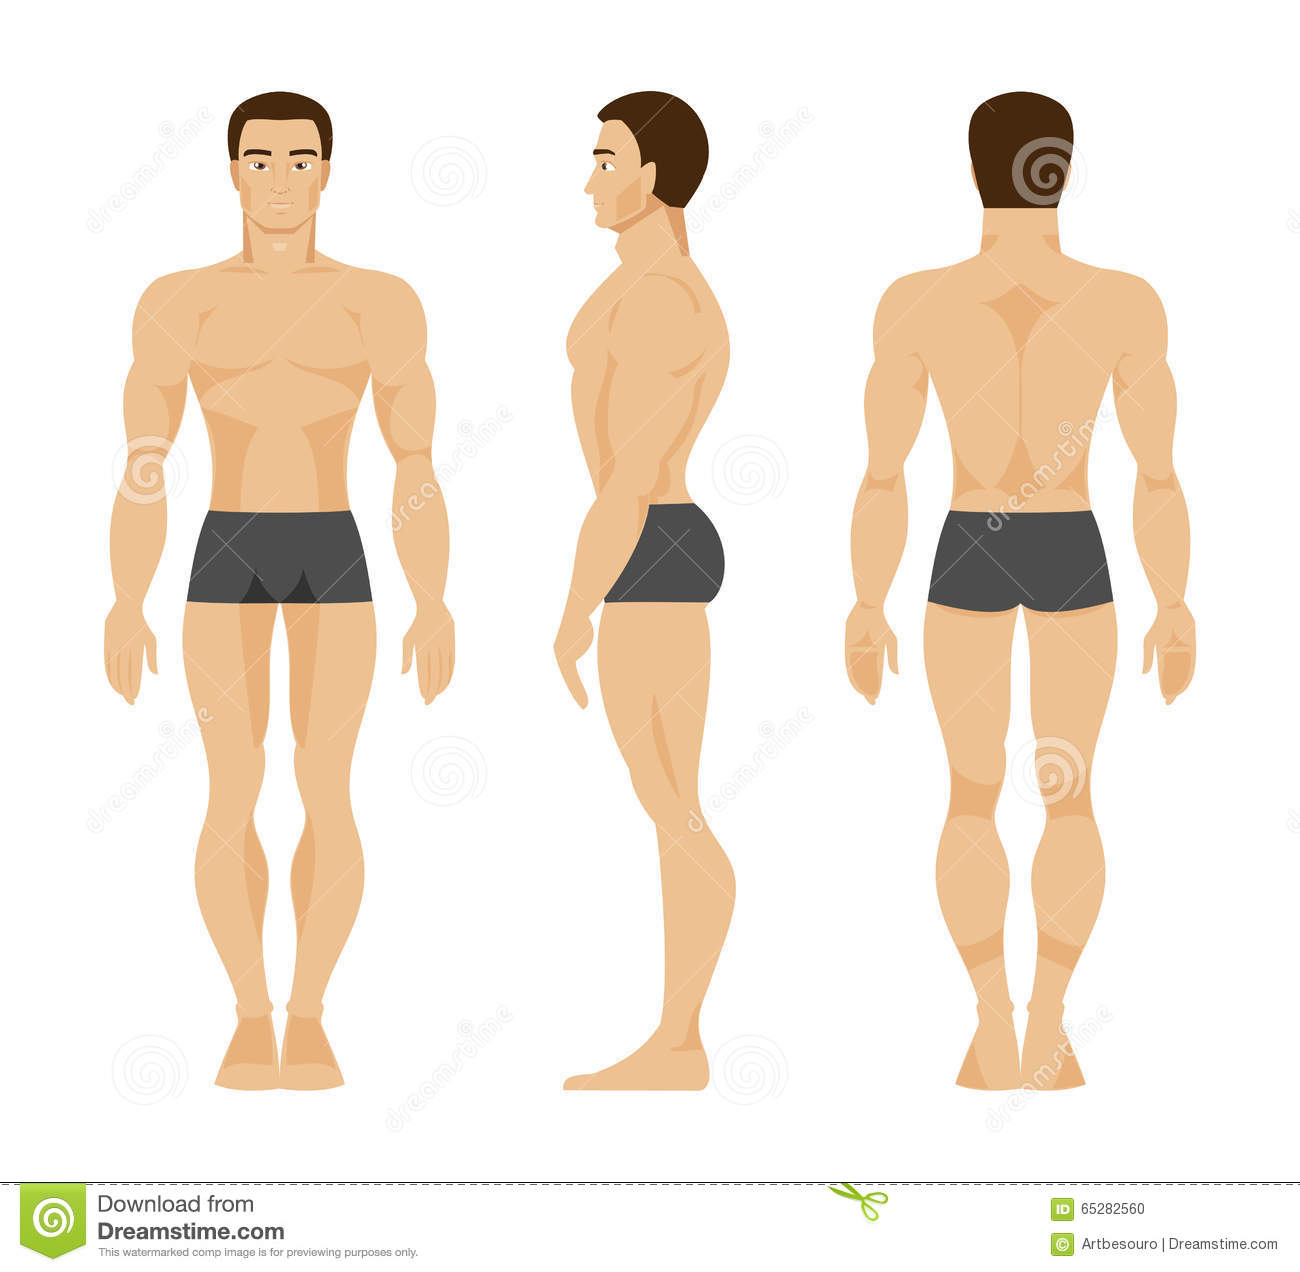 Male Anatomy Vector Illustration Stock Vector Illustration Of